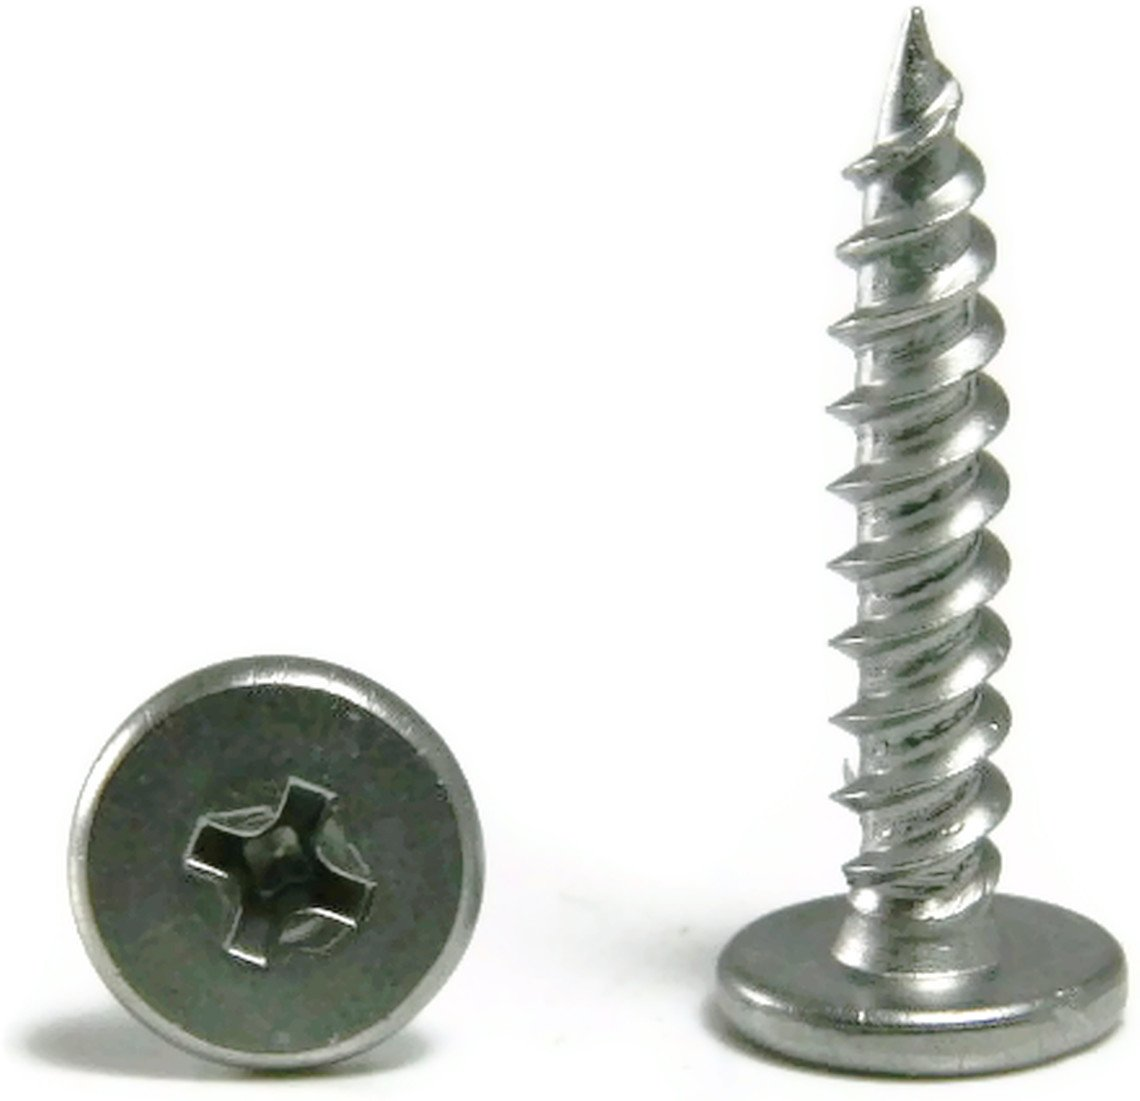 #10 x 1 Qty-250 Phillips Pancake Head Sheet Metal Screws 410 Stainless Steel